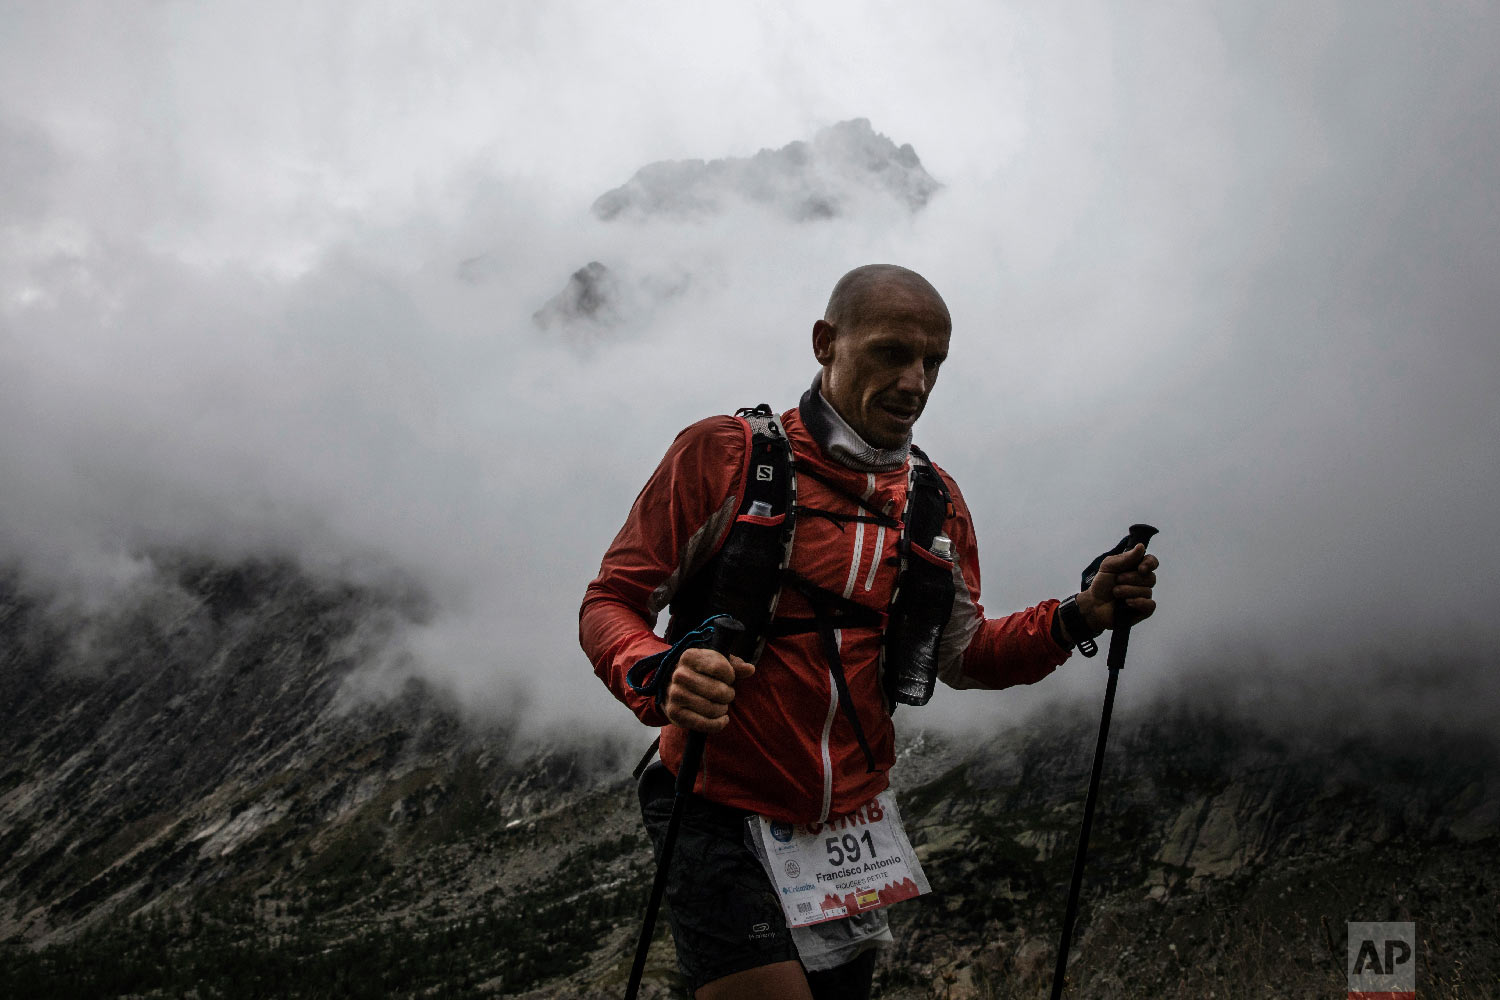 A competitor runs at the Grand Col Ferret as he competes in the 170km Ultra-Trail of Mont-Blanc (UTMB) race, near Courmayeur, Italy, Sept 1, 2018. (AP Photo/Laurent Cipriani)